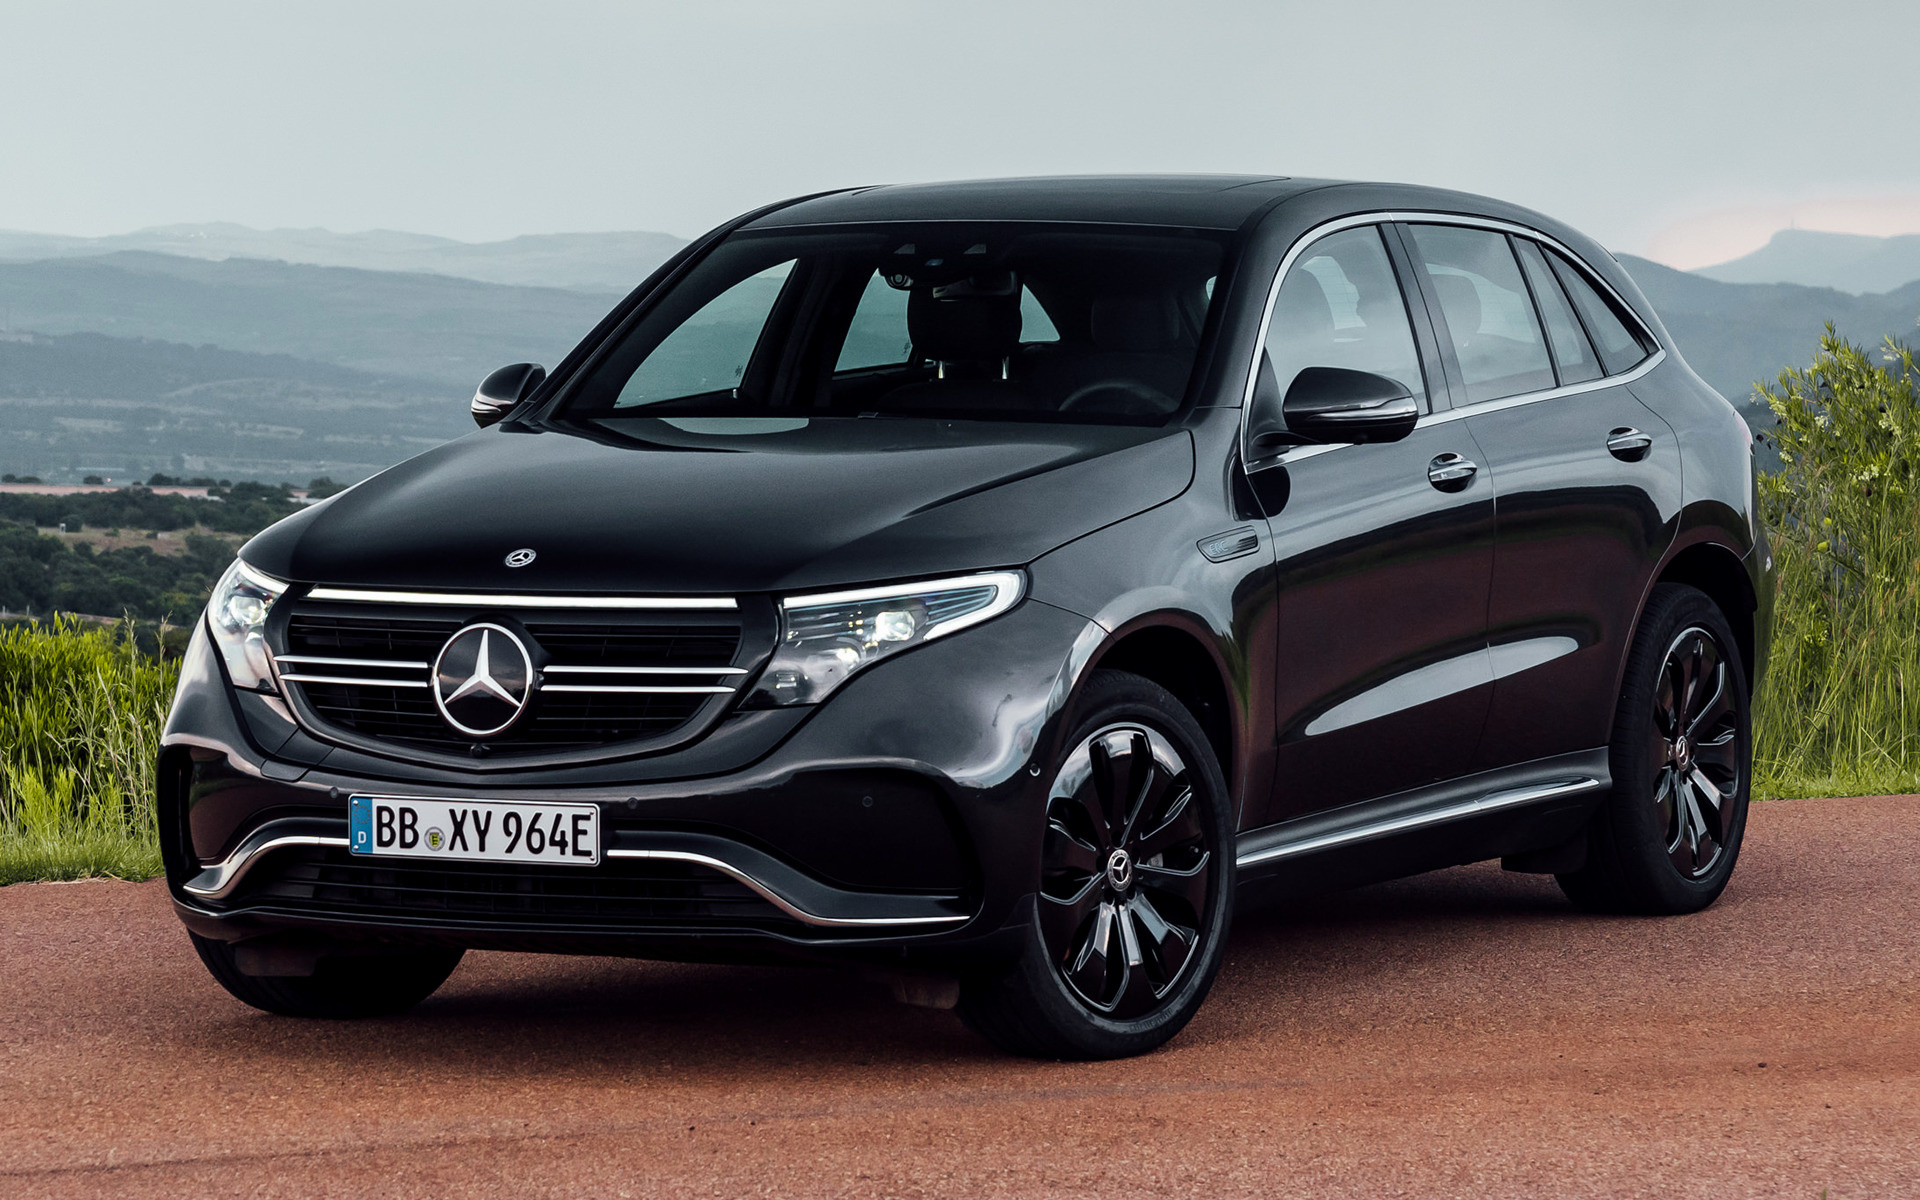 2019 Mercedes Benz EQC AMG Line   Wallpapers and HD Images Car Pixel 1920x1200